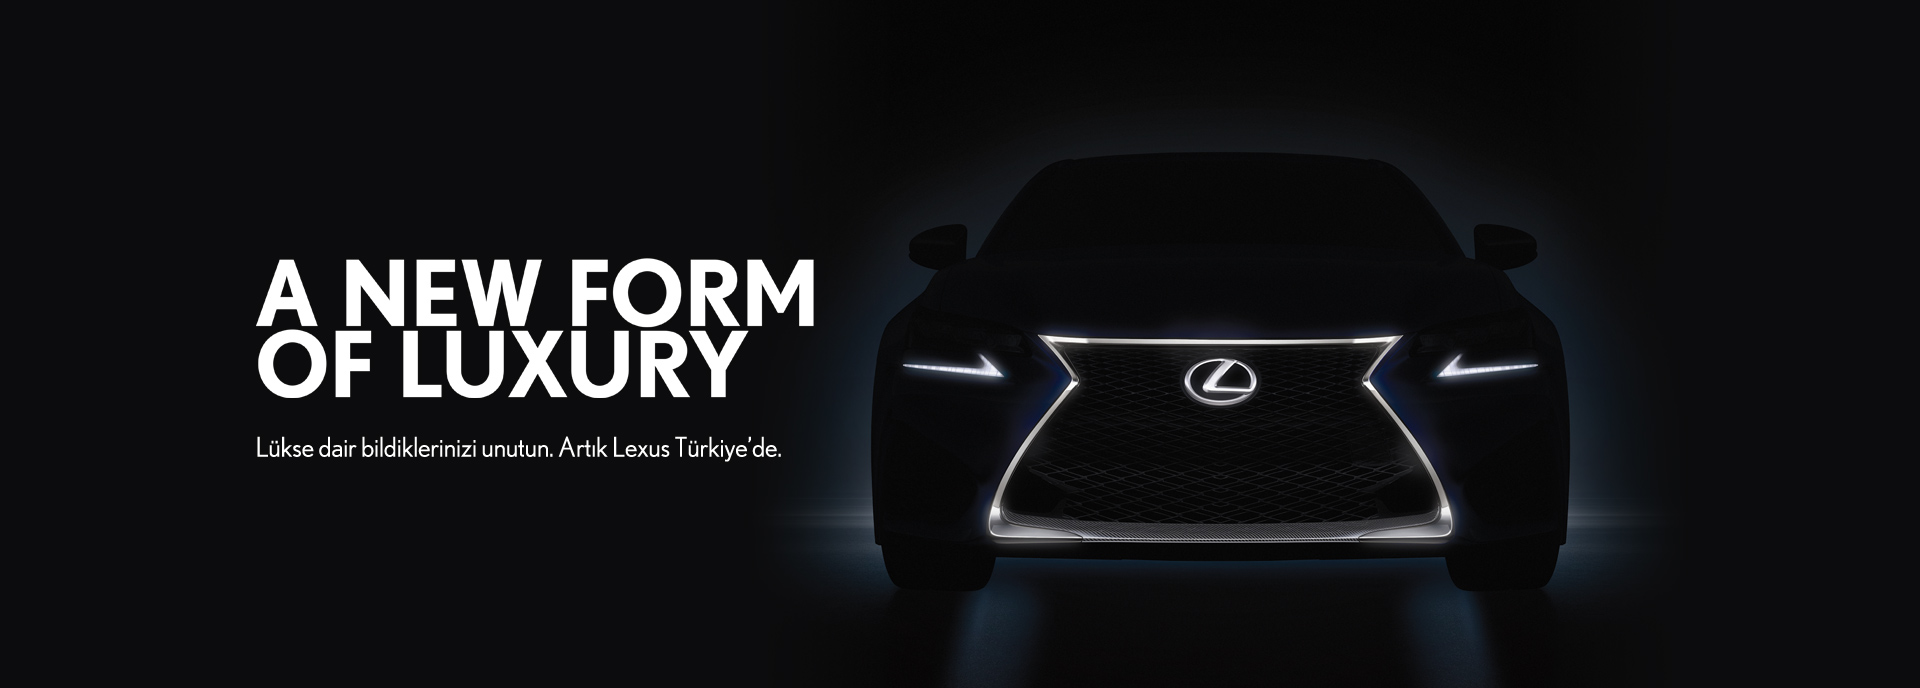 a-new-form-of-luxury